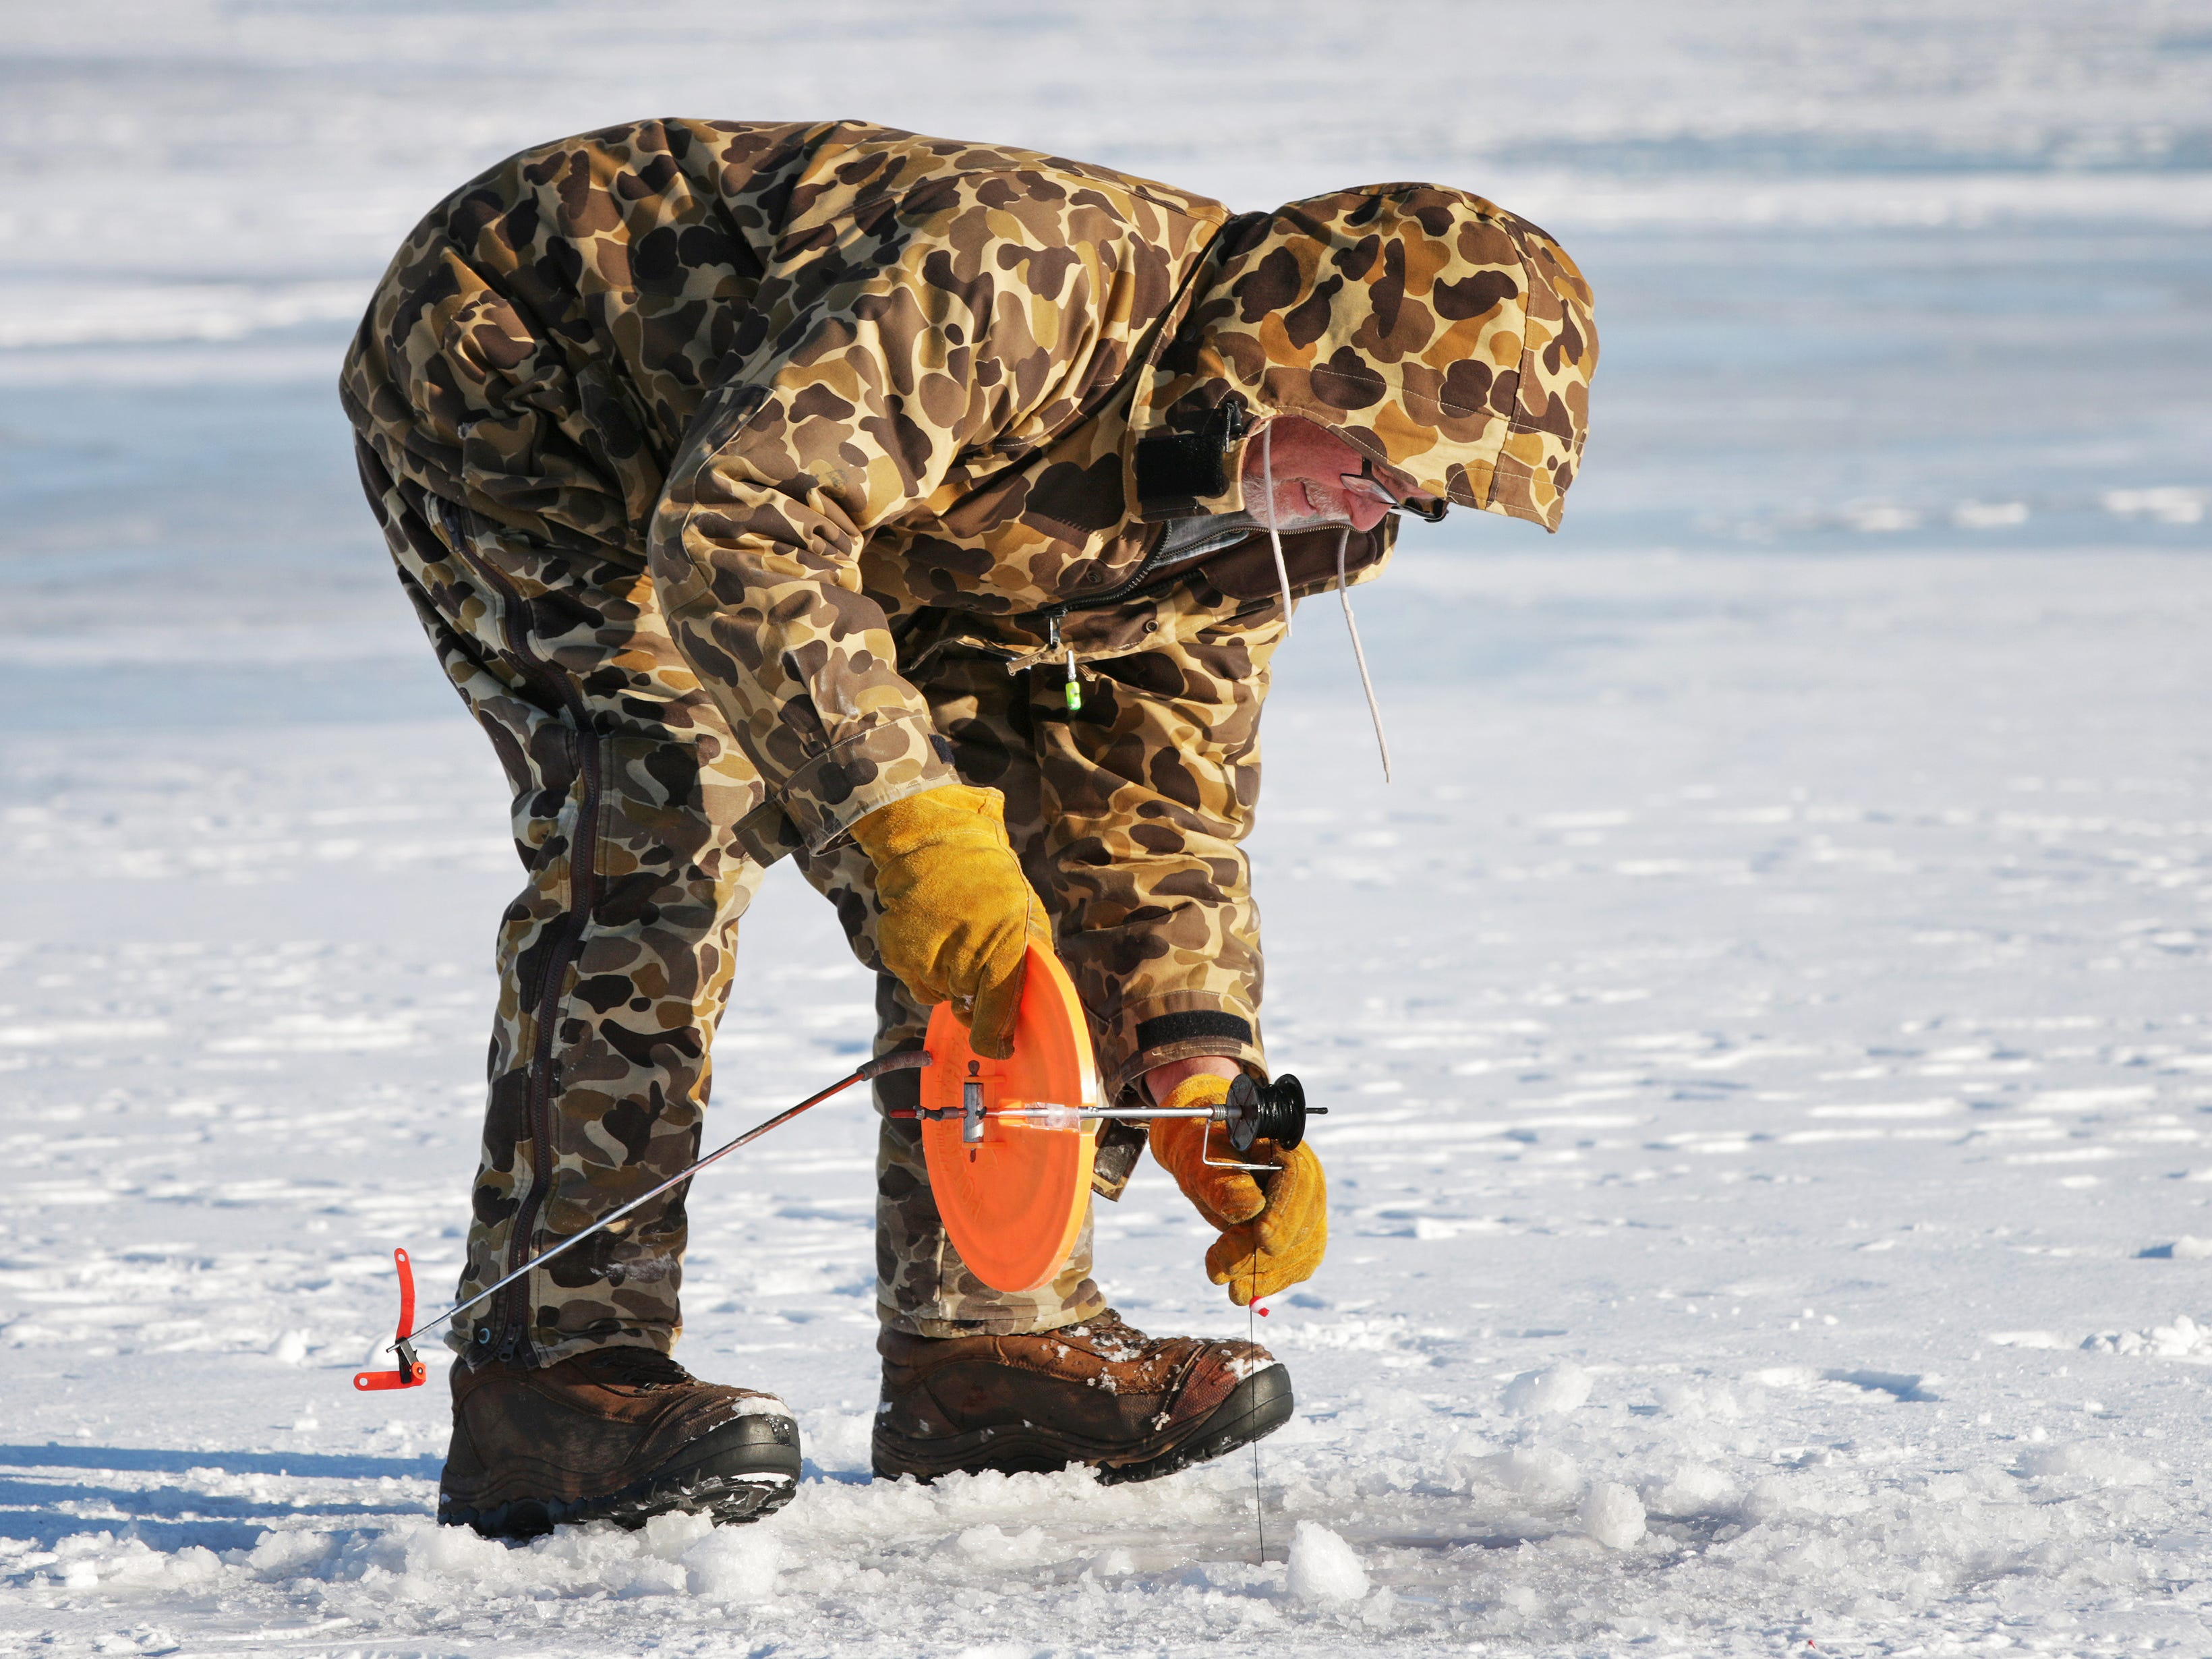 Jeff Krenke of Port Washington, Wis., sets his tip up, Tuesday December 26, 2017, at Random Lake, Wis.  The well bundled Krenke said he didn't catch anything yet, but he had hopes to before leaving.